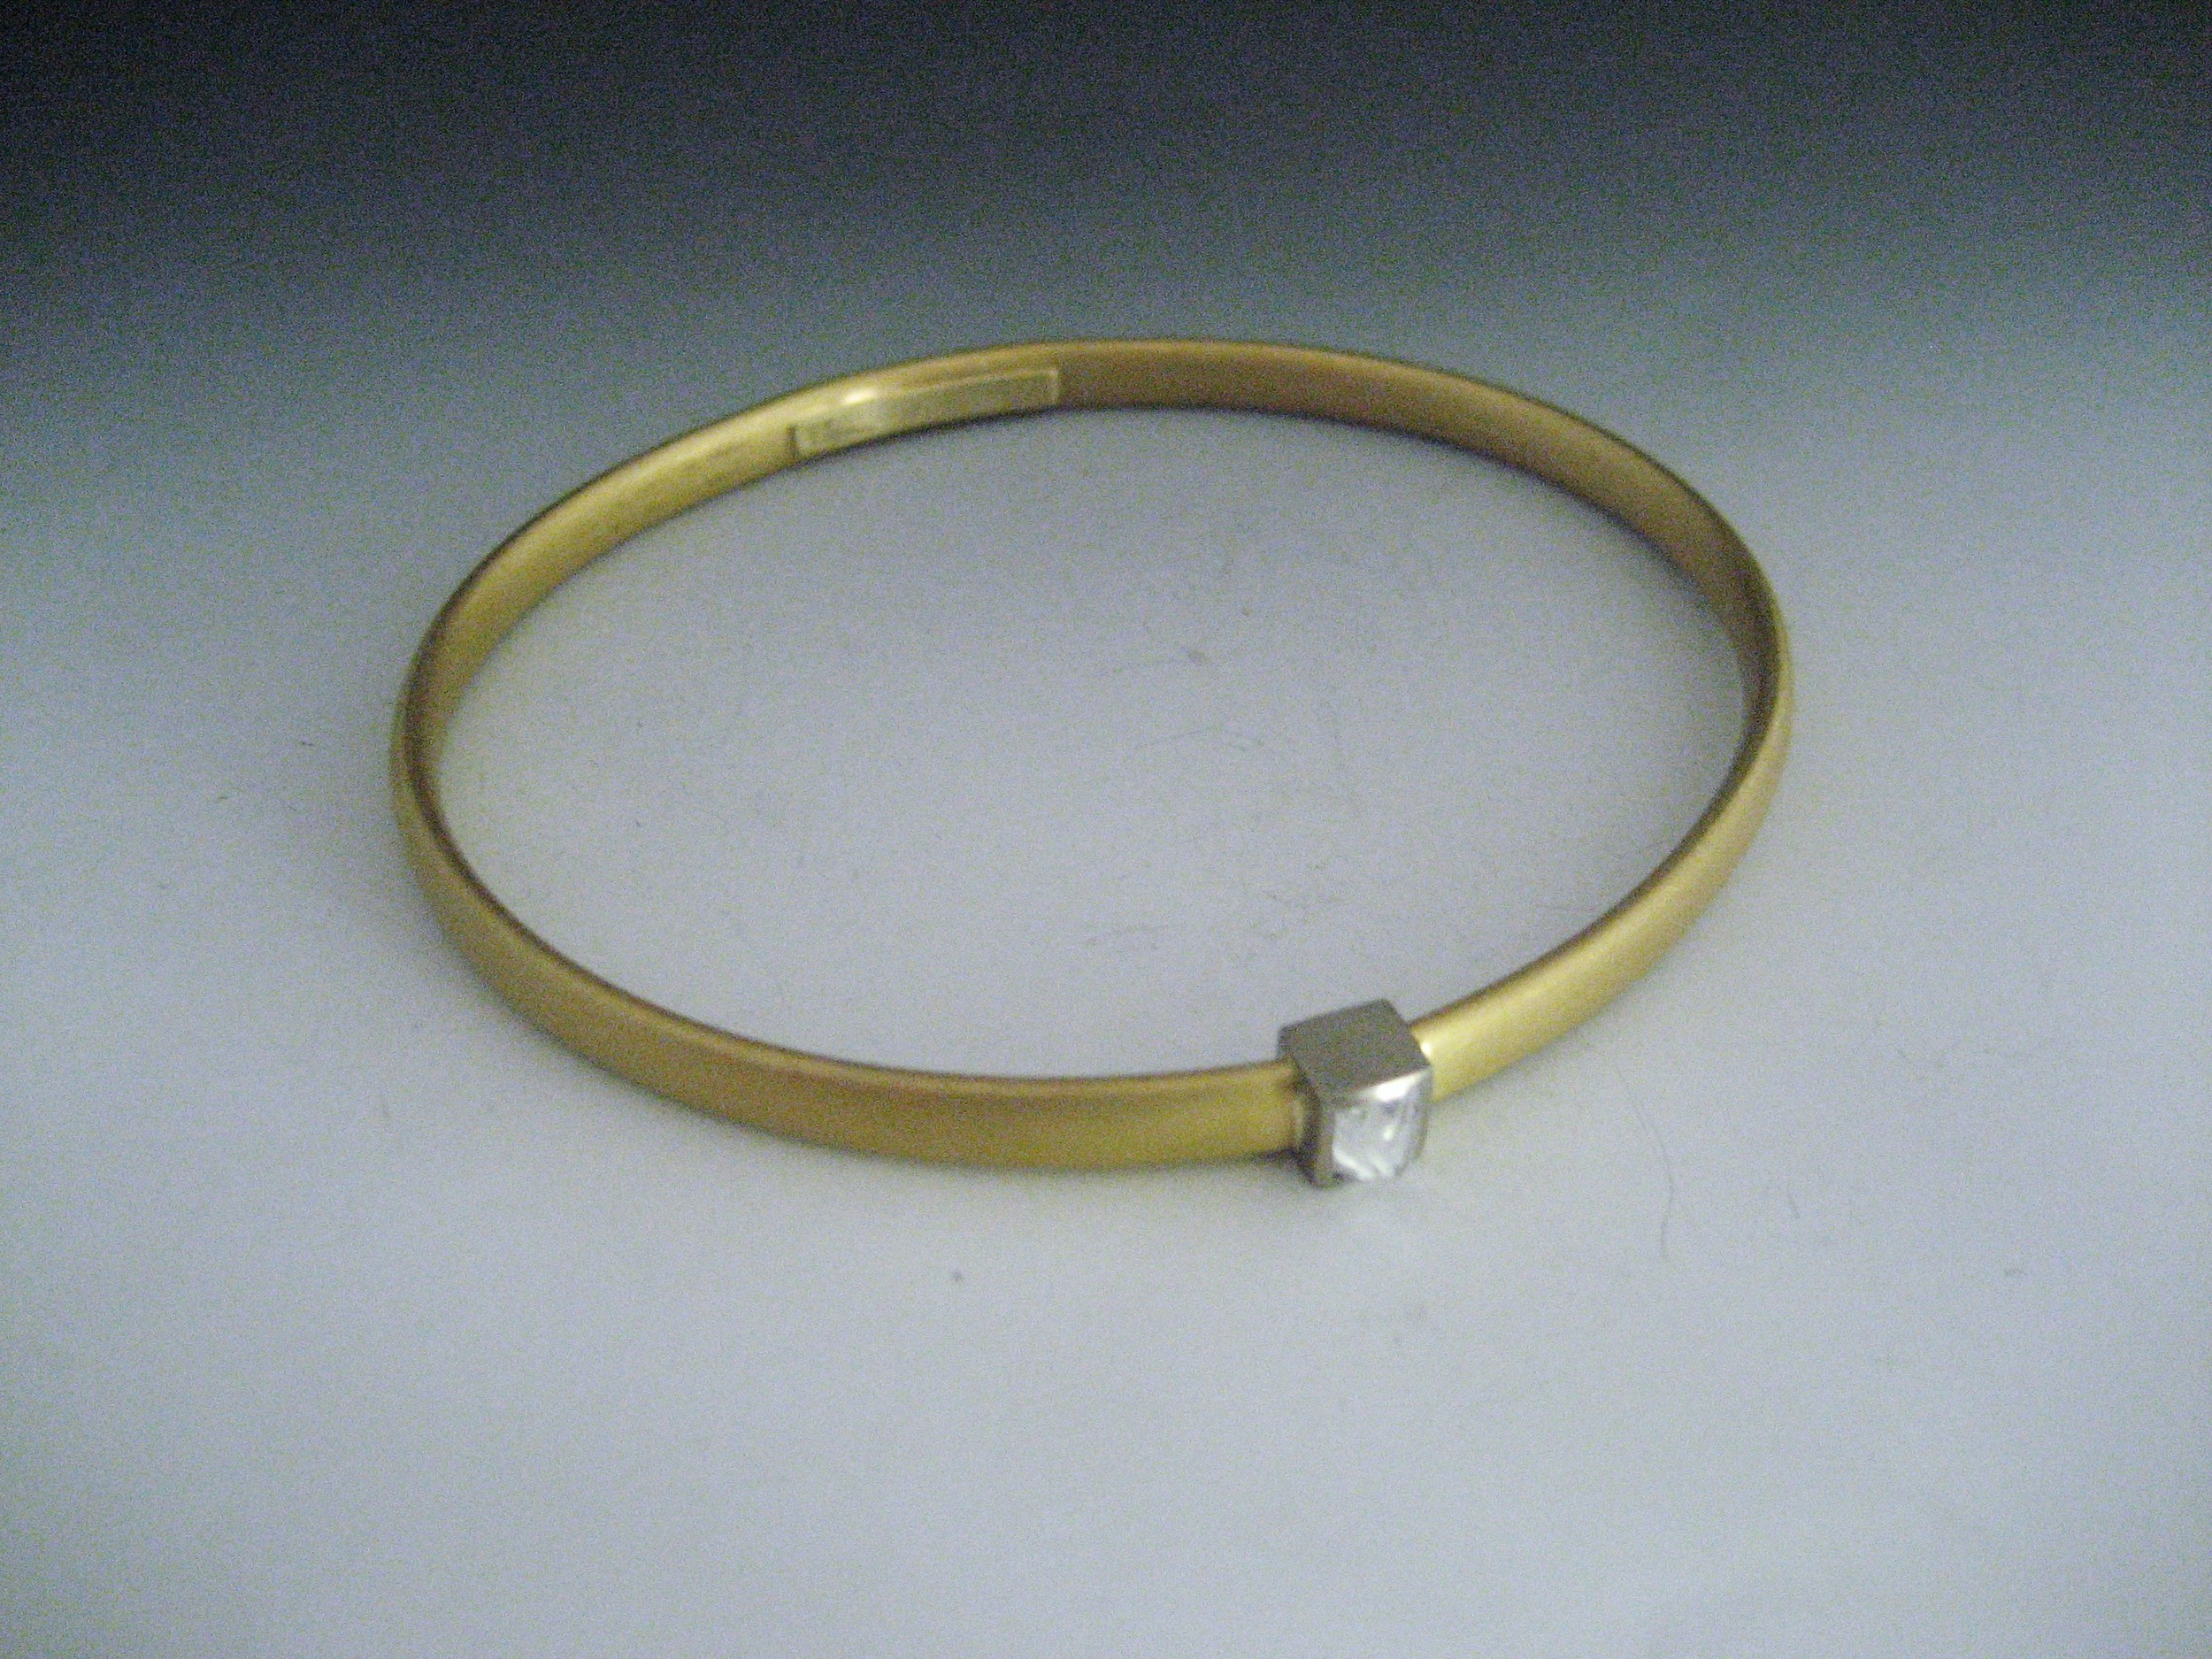 Oval Solid 22k Bangle with Octohedron